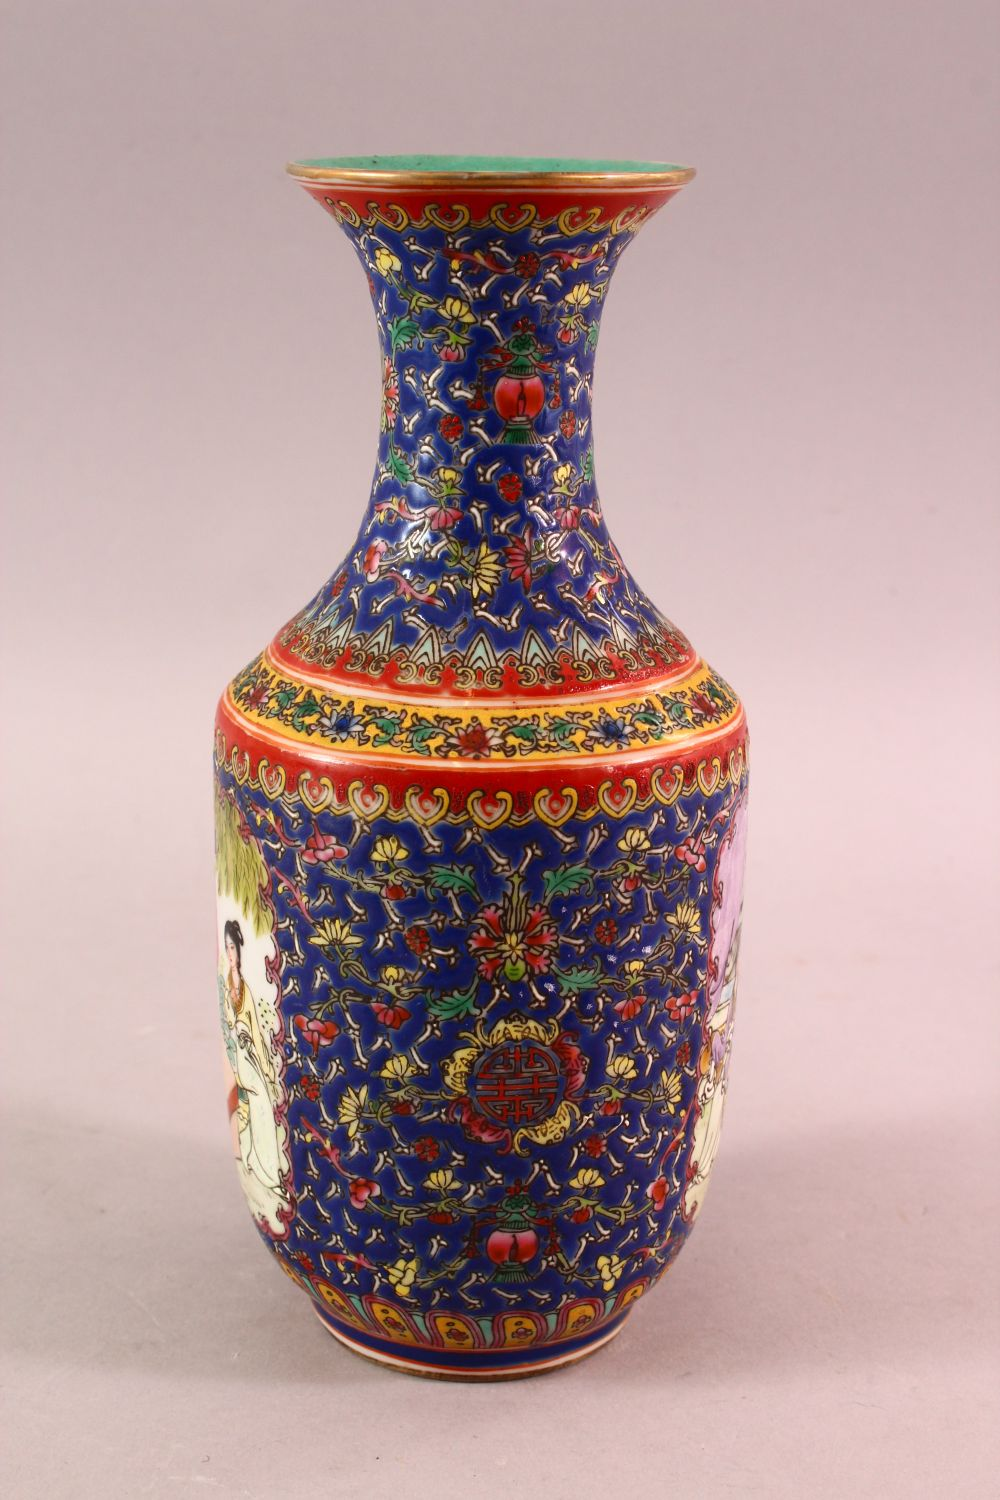 A CHINESE FAMILLE ROSE PORCELAIN VASE, with panels of figures and floral decoration, the base with a - Image 4 of 6